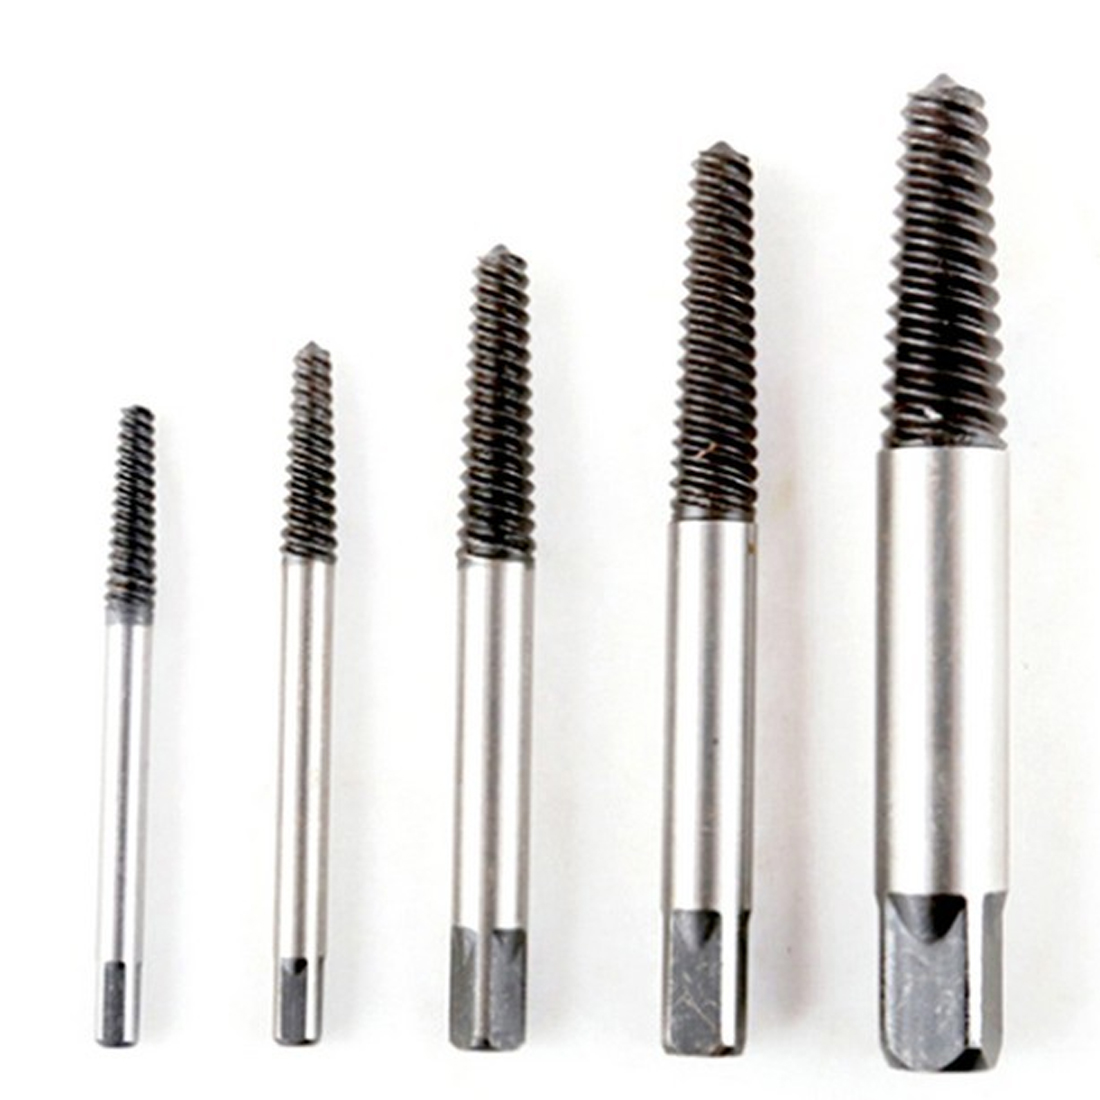 Back To Search Resultstools Aspiring 4pcs Double Side Screw Extractor Drill Bits Set Tools Easy Out Set Damage Screws Bolt Kit Guide Remover Works With Any Drill We Take Customers As Our Gods Drill Bits